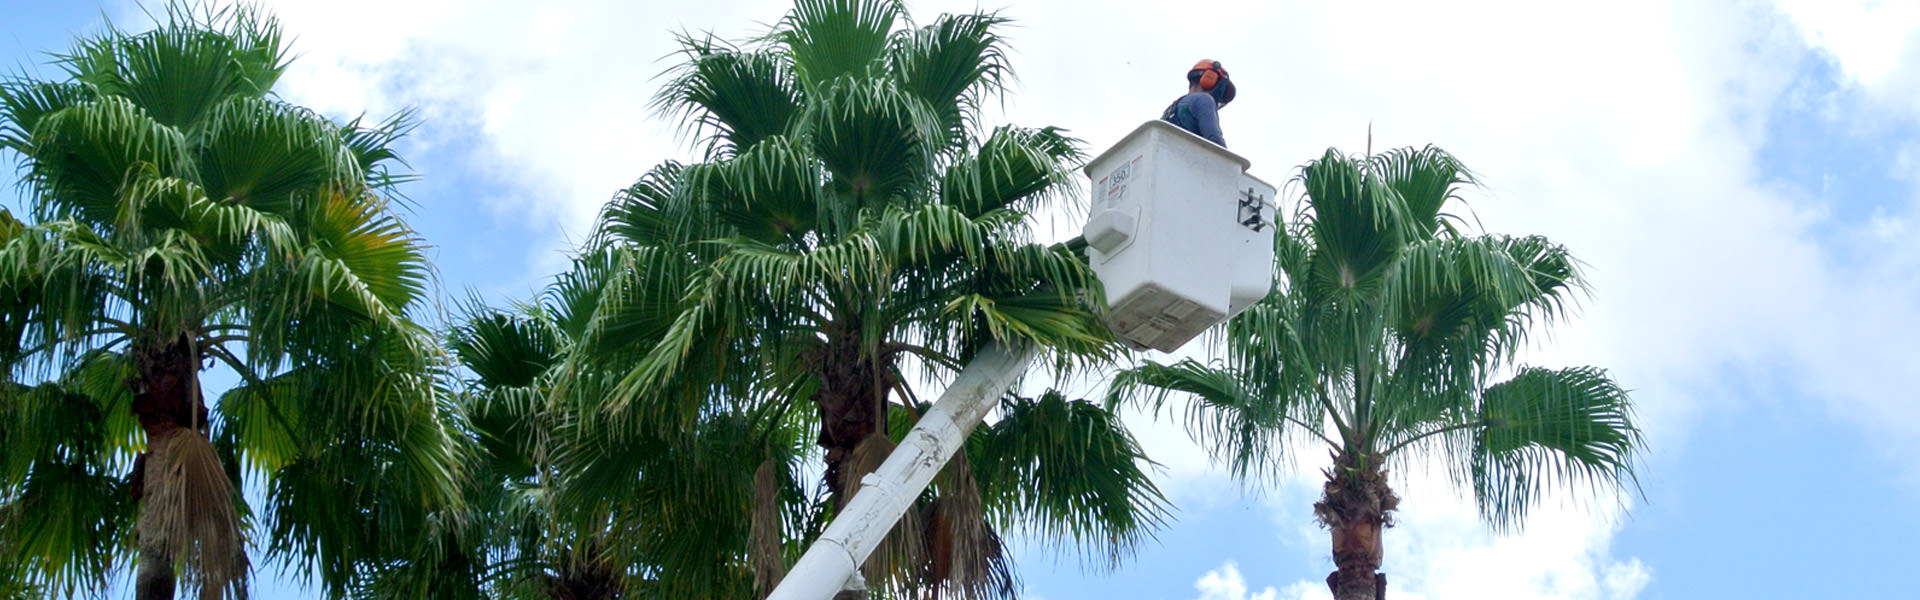 Palm Tree Maintenance Orlando